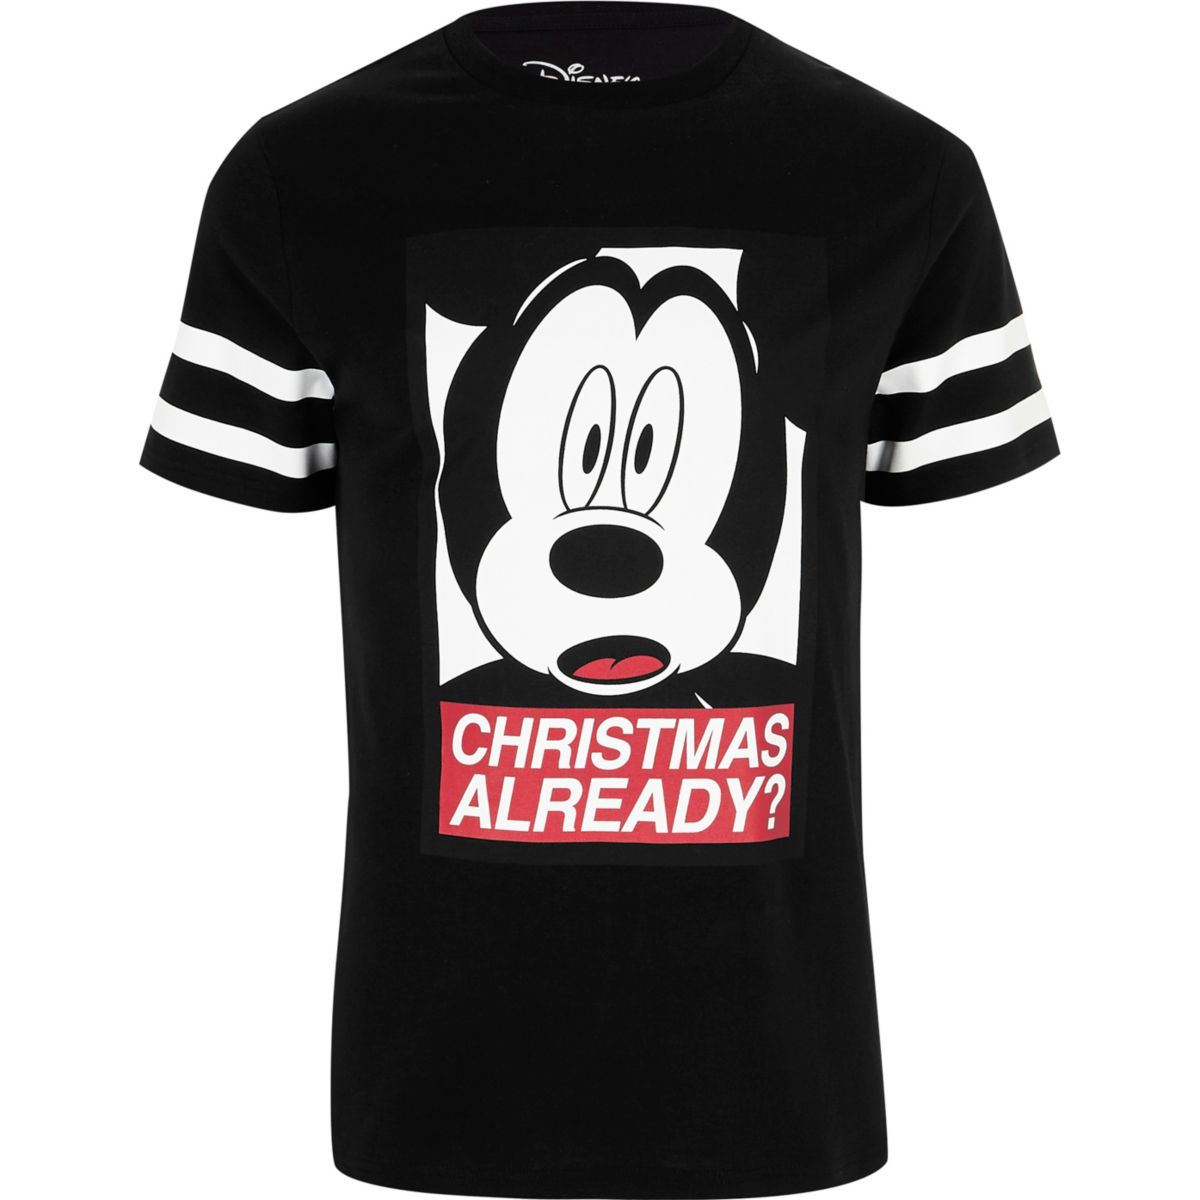 T-shirt imprimé Mickey Mouse « Christmas already ? » noir